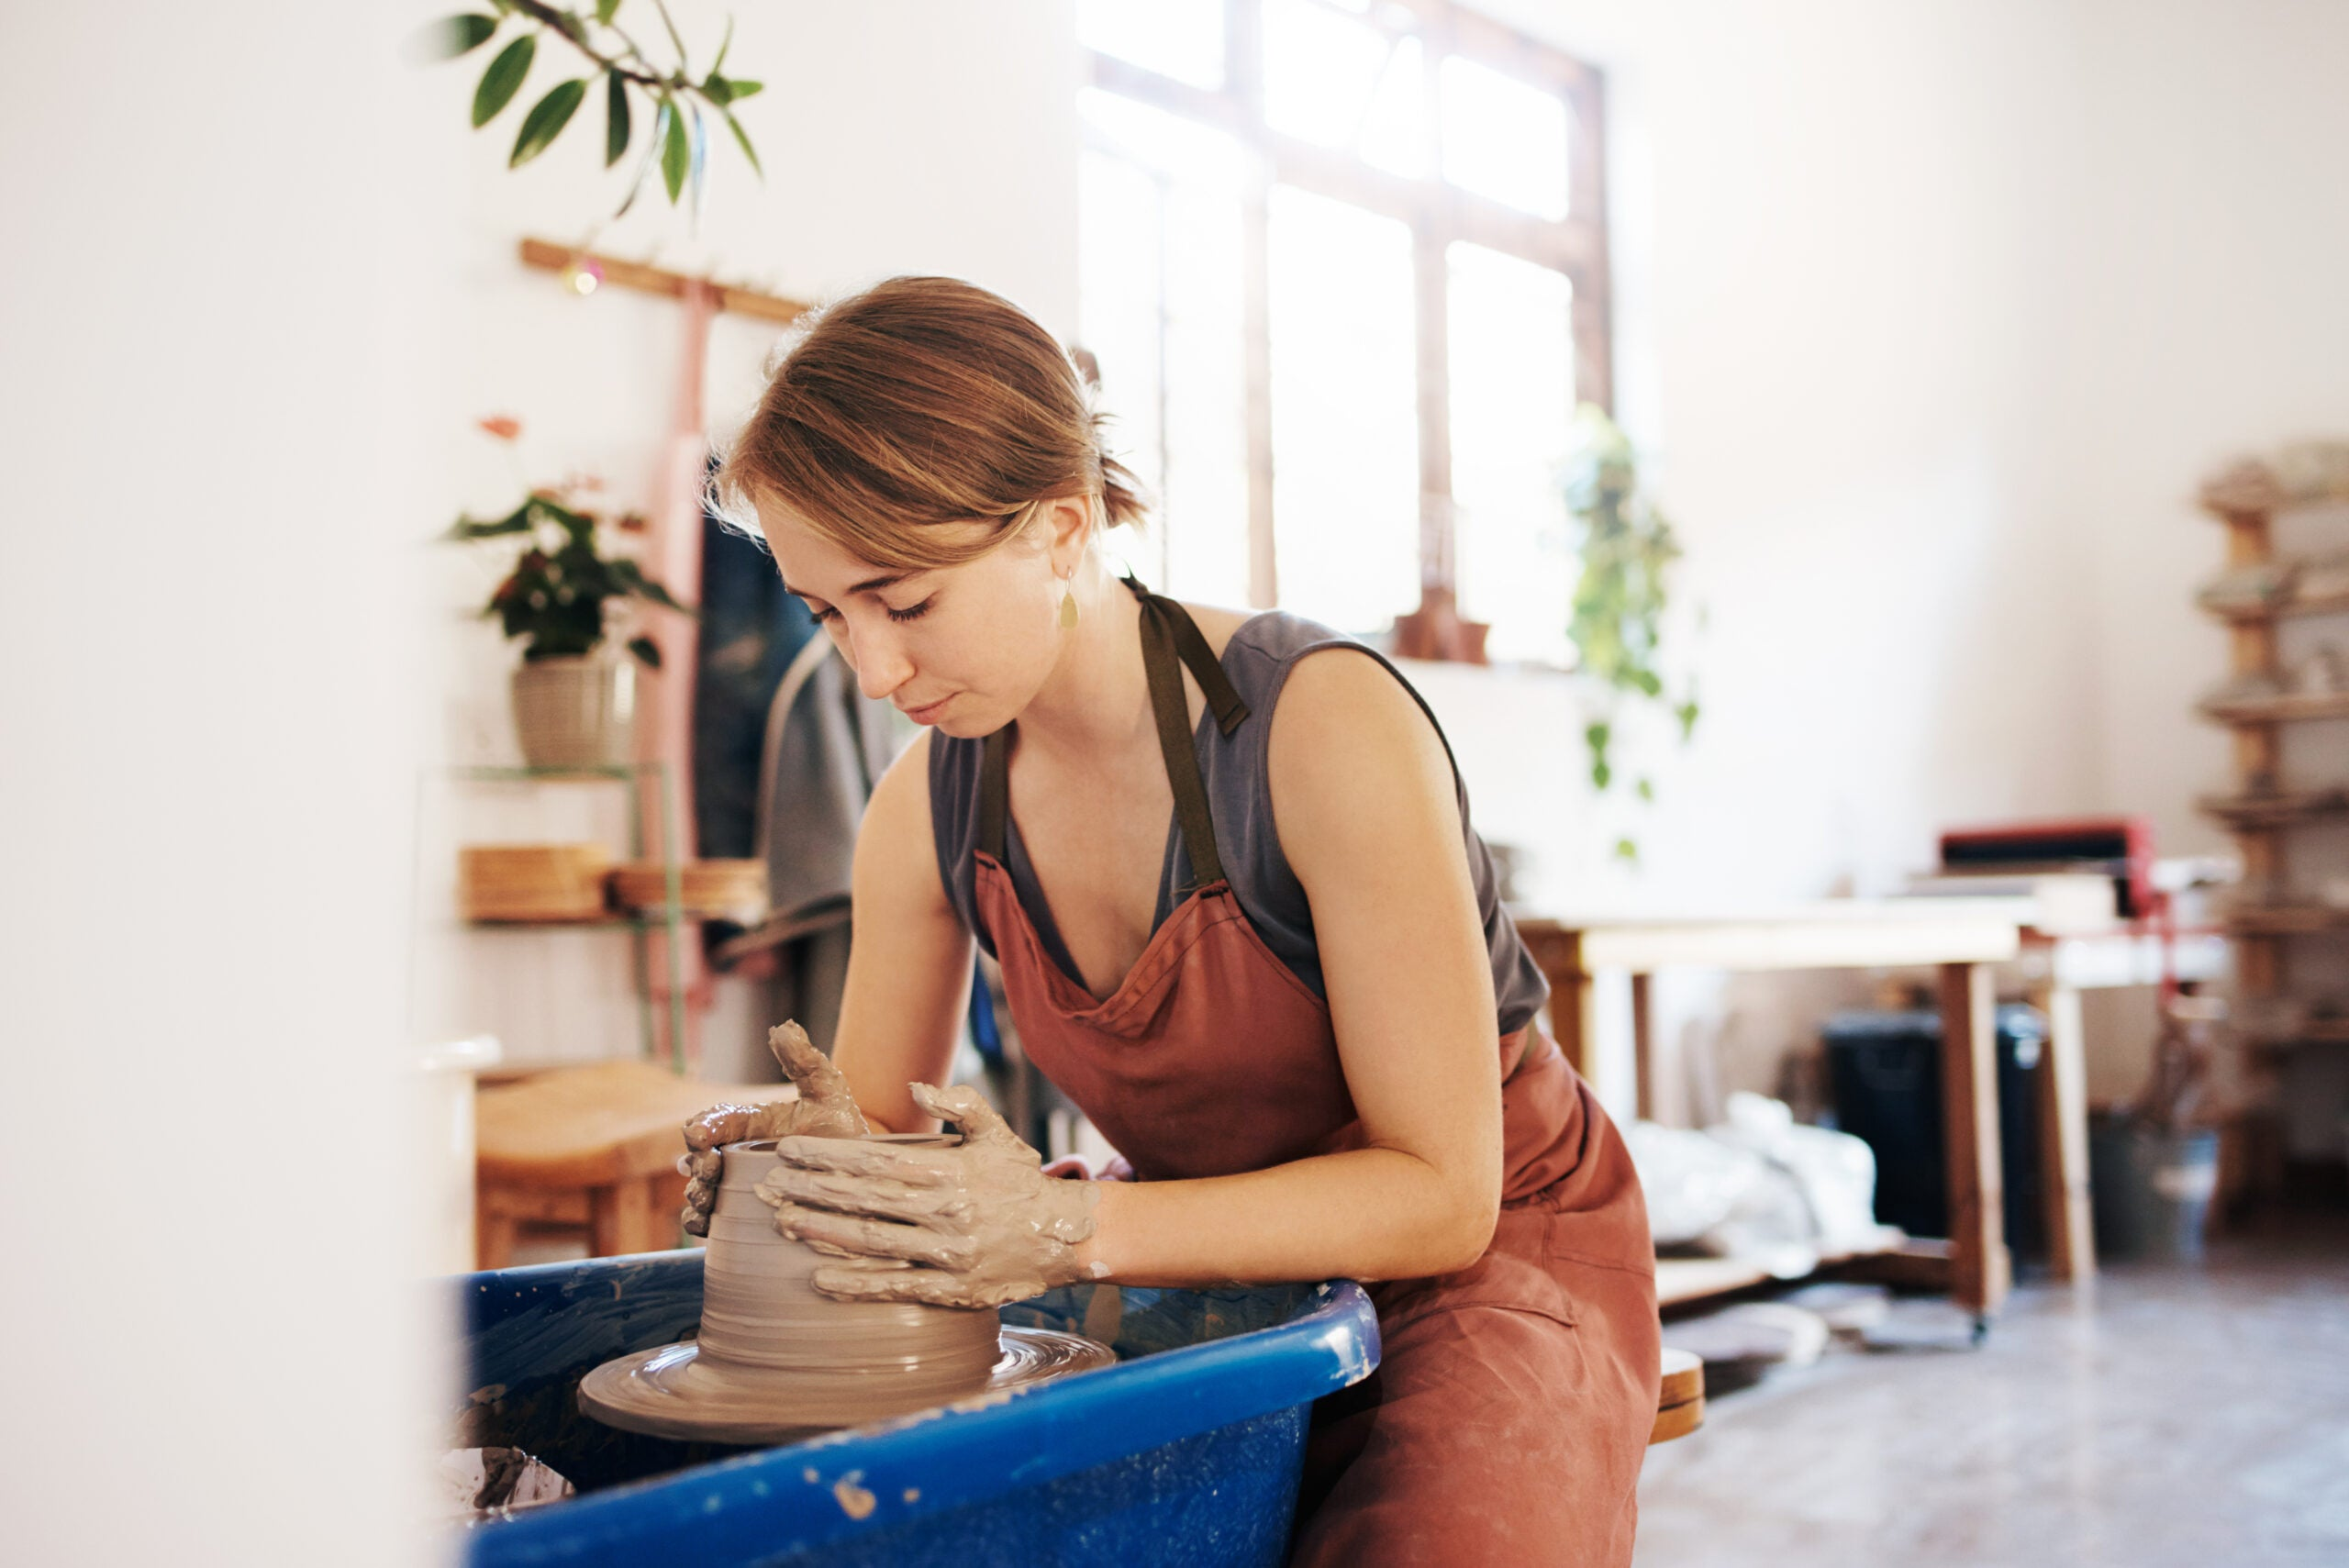 Shot of a woman molding clay on a pottery wheel